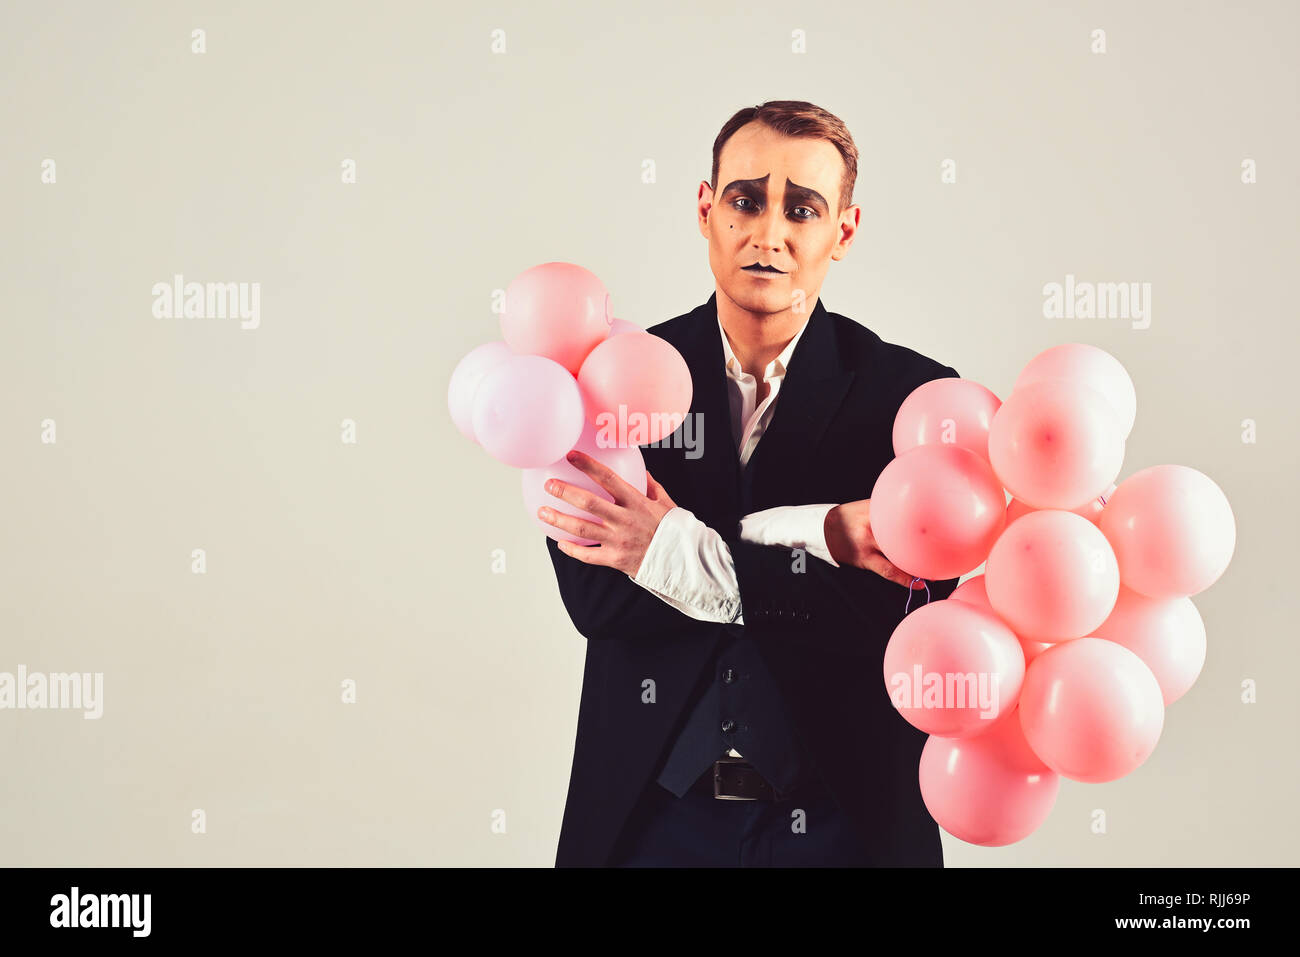 Special day to celebrate. Mime man with party balloons. Balloon artist. Man with mime makeup on birthday party. Happy birthday or anniversary - Stock Image